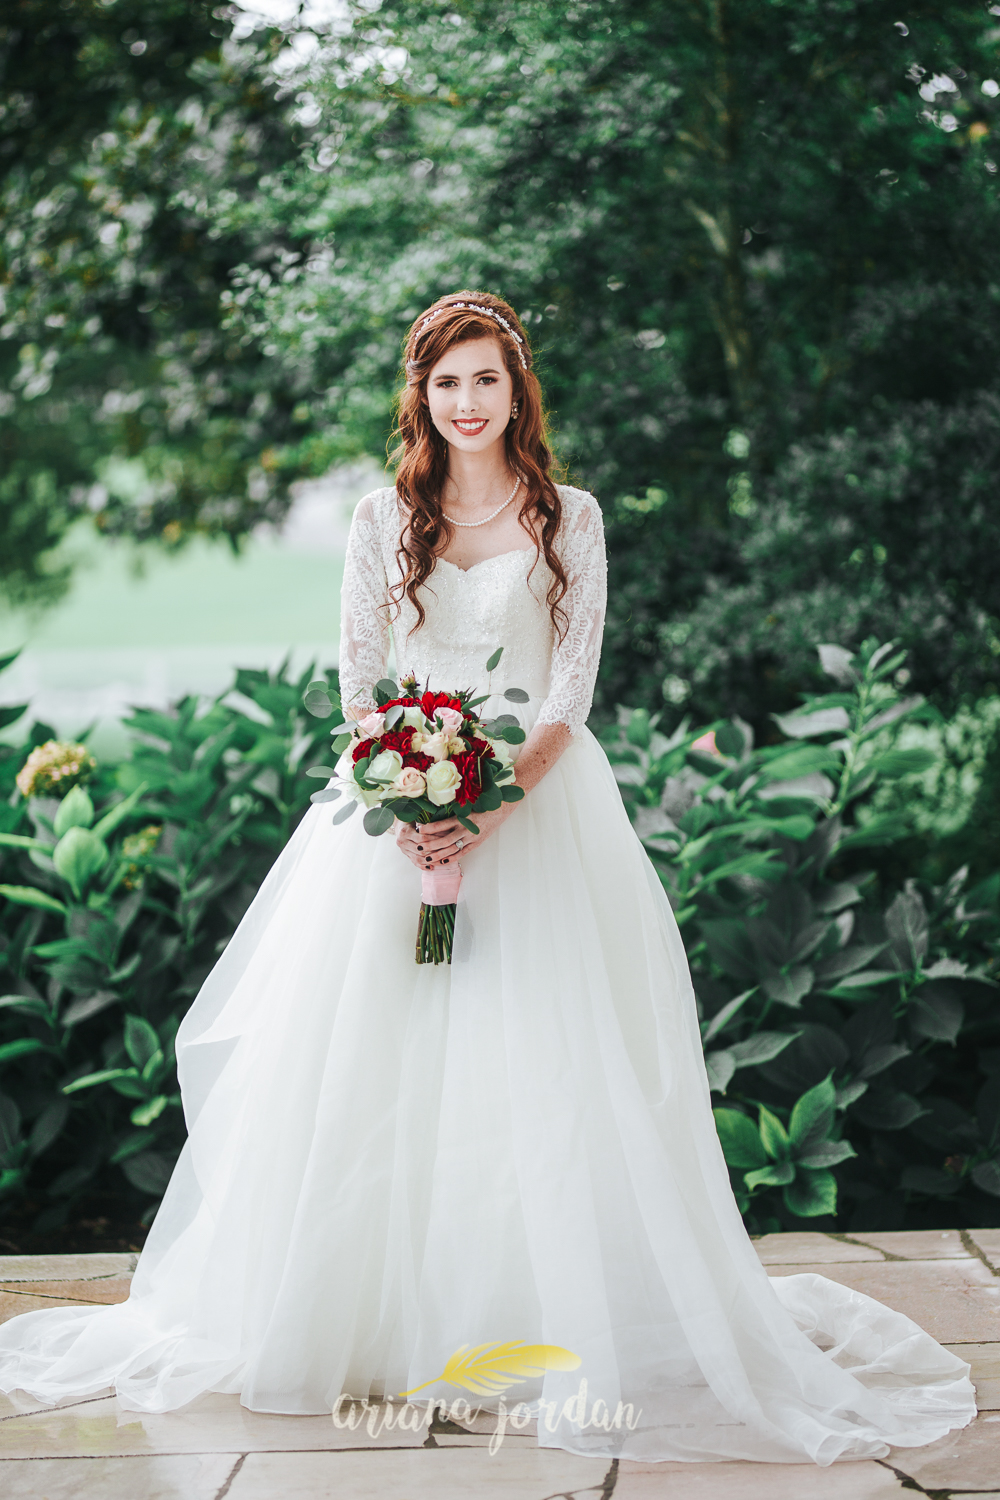 088 - Ariana Jordan - Kentucky Wedding Photographer - Landon & Tabitha_.jpg